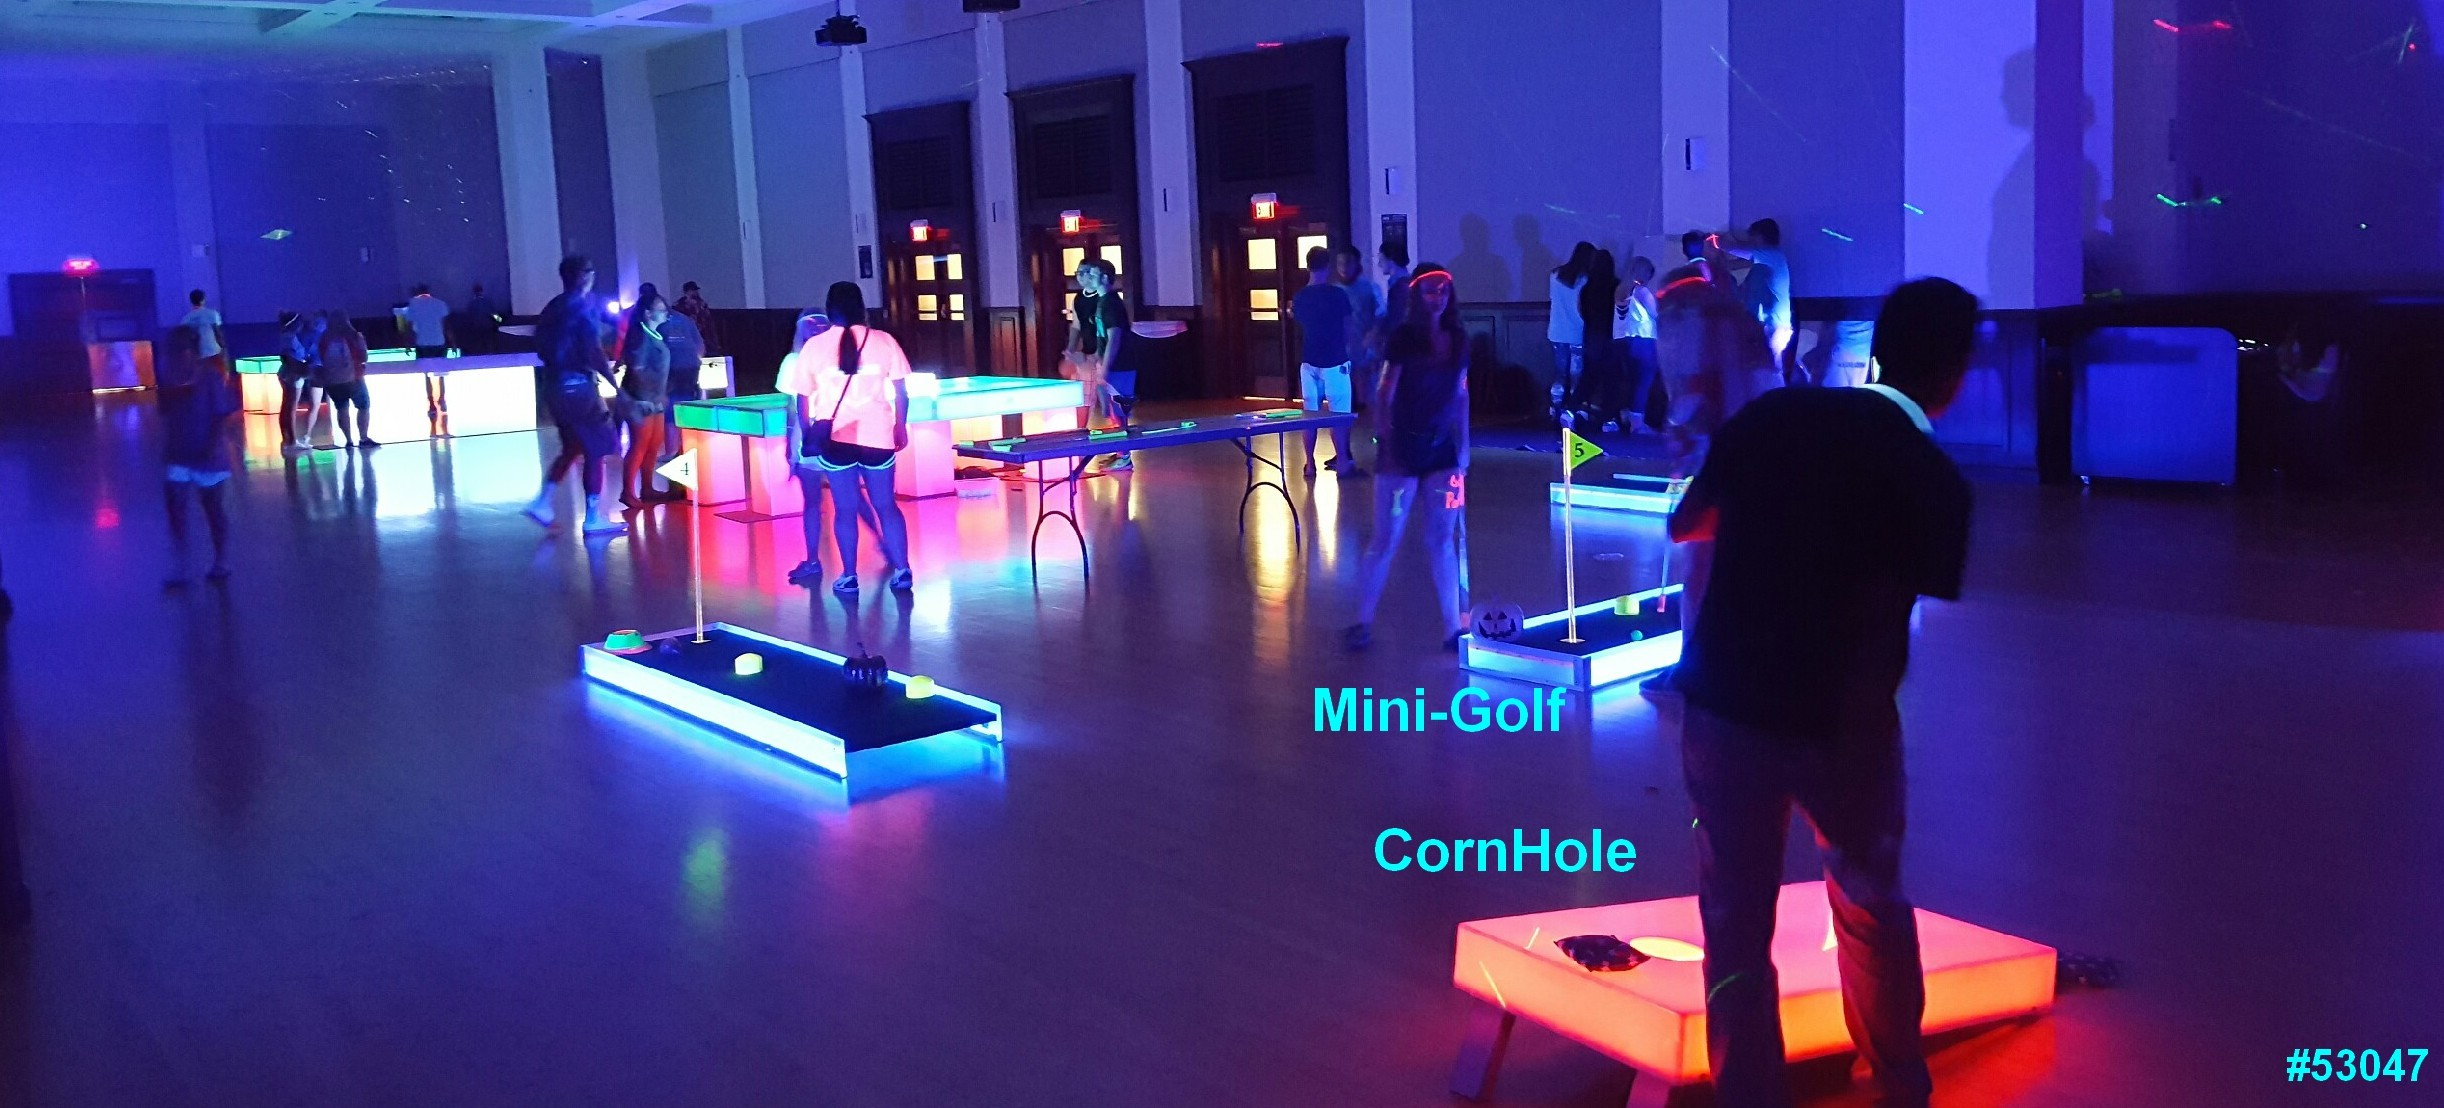 glow games cornhole mini golf glow in the dark rentals 53047 Glow Games